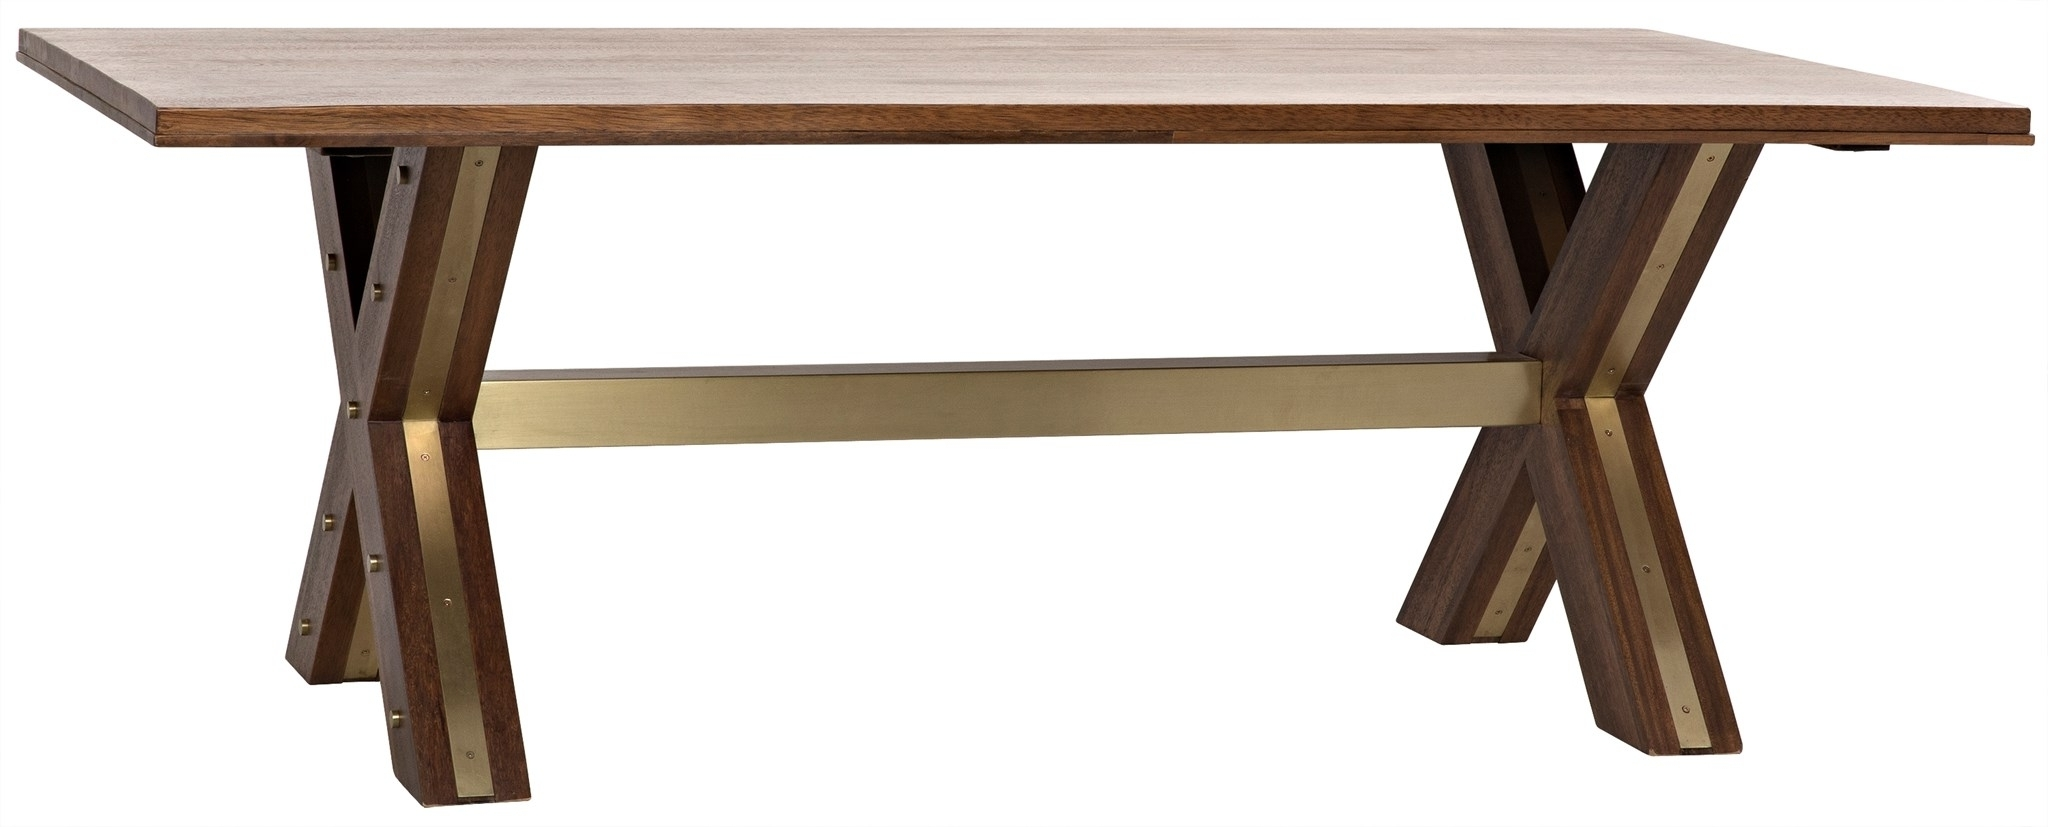 "Long Dining Tables With Newest 84"" Long Dining Table Solid Walnut Wood Dark Brown Finish Brass (View 18 of 25)"